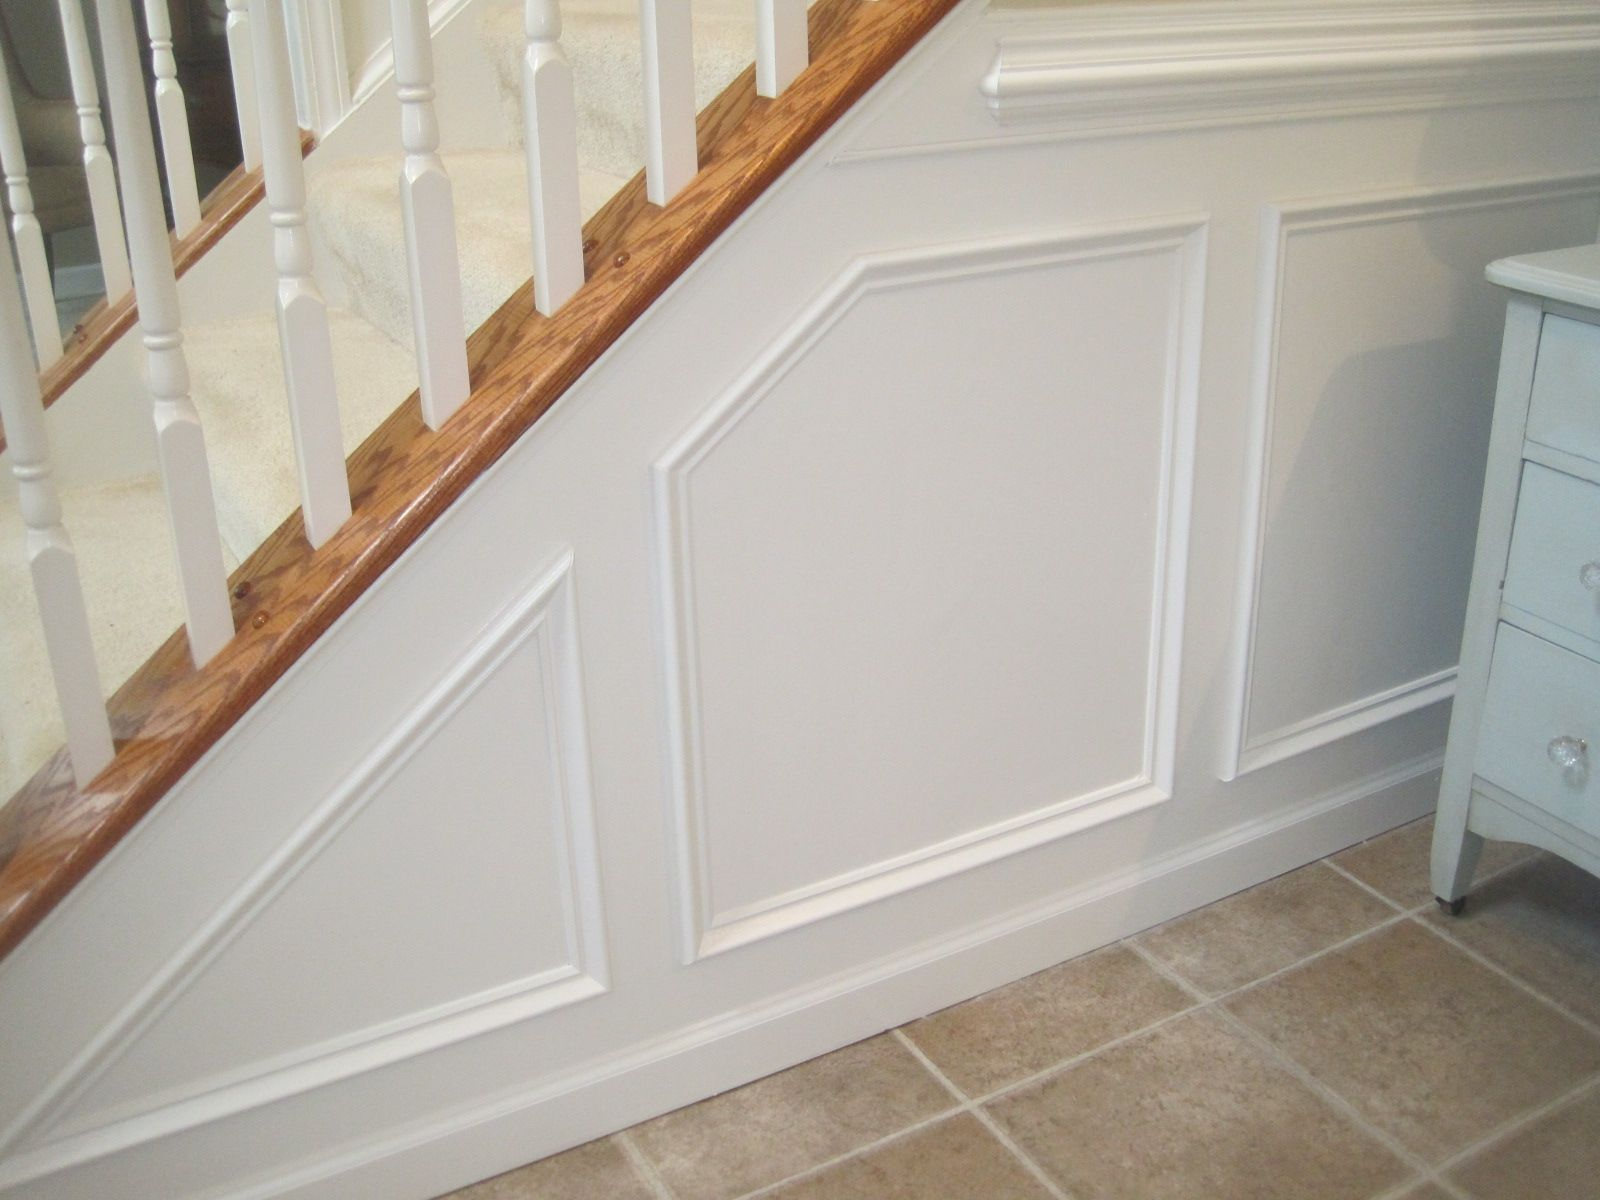 Chair Rail Paneling Ideas Part - 33: 30+ Best Chair Rail Ideas, Pictures, Decor And Remodel